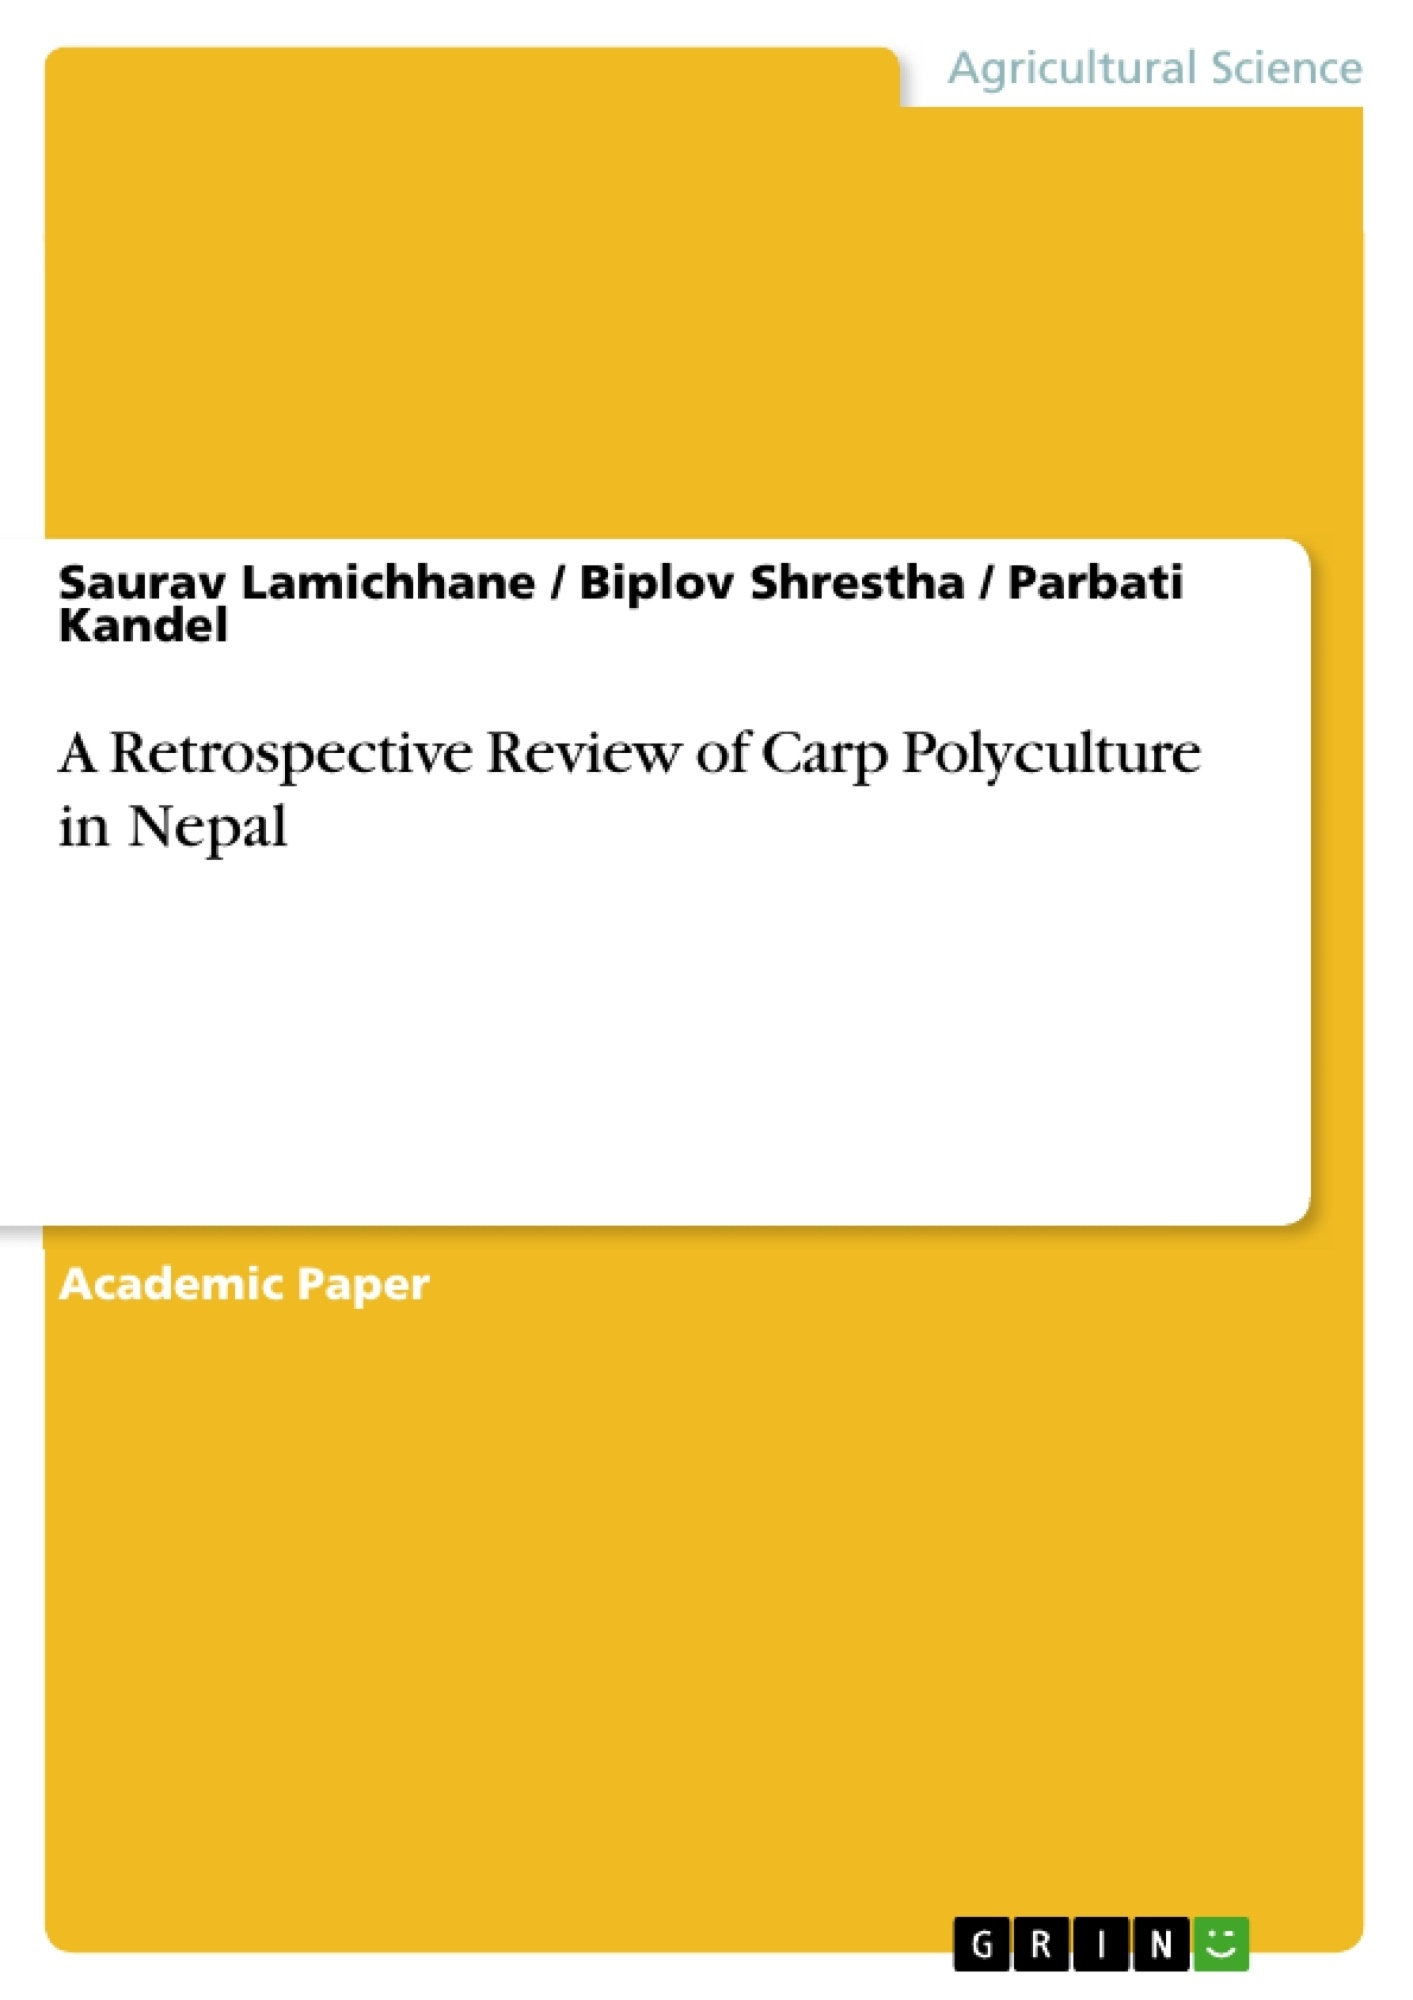 Title: A Retrospective Review of Carp Polyculture in Nepal